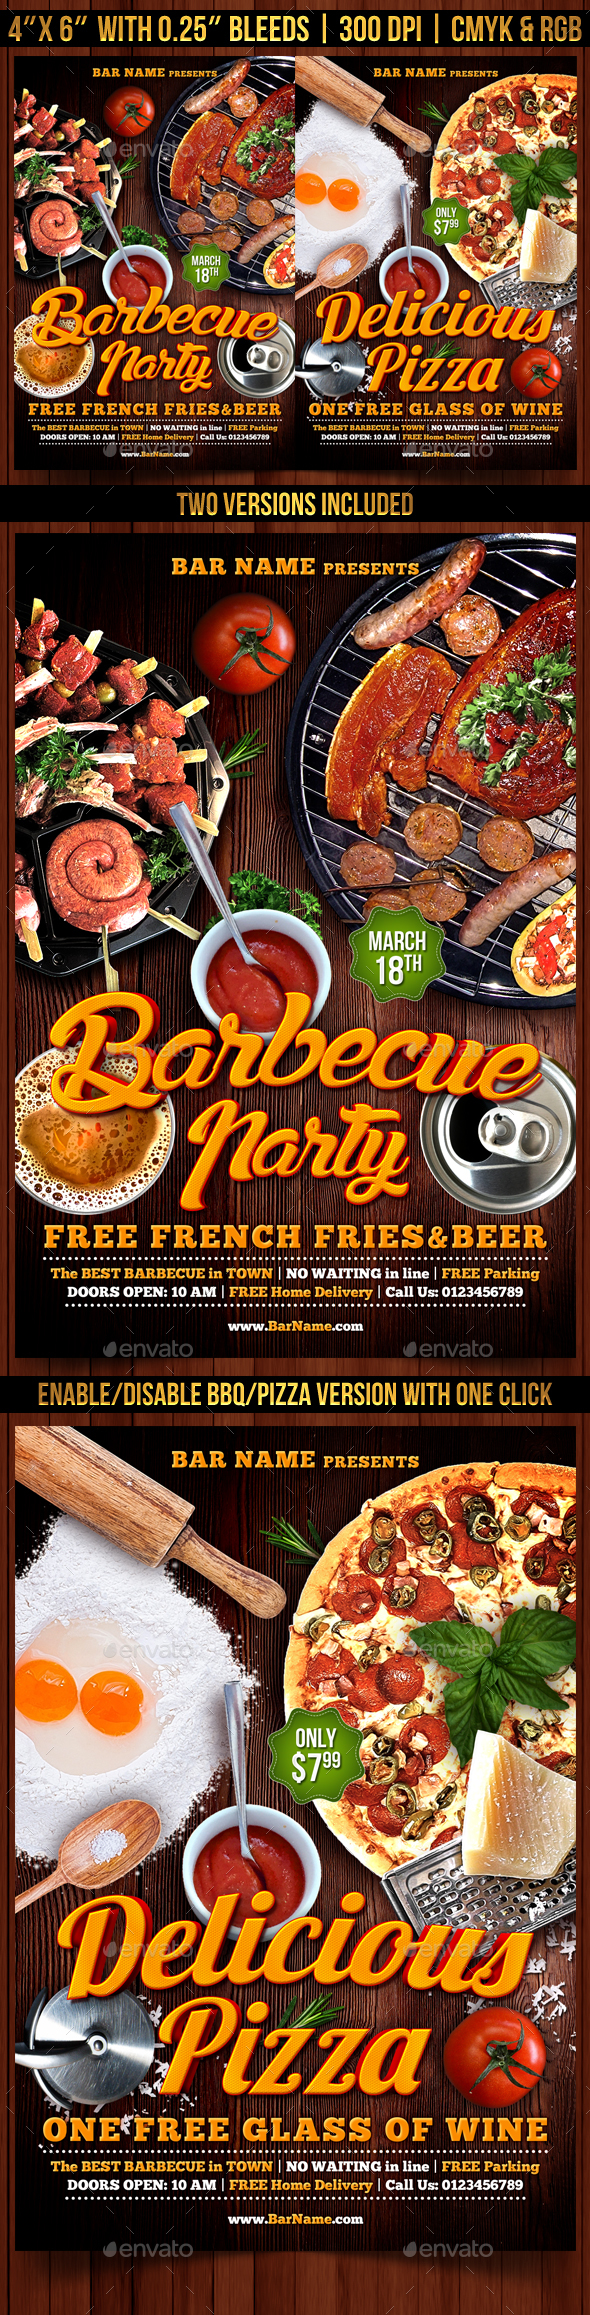 Barbecue and Pizza Flyer Template - Restaurant Flyers